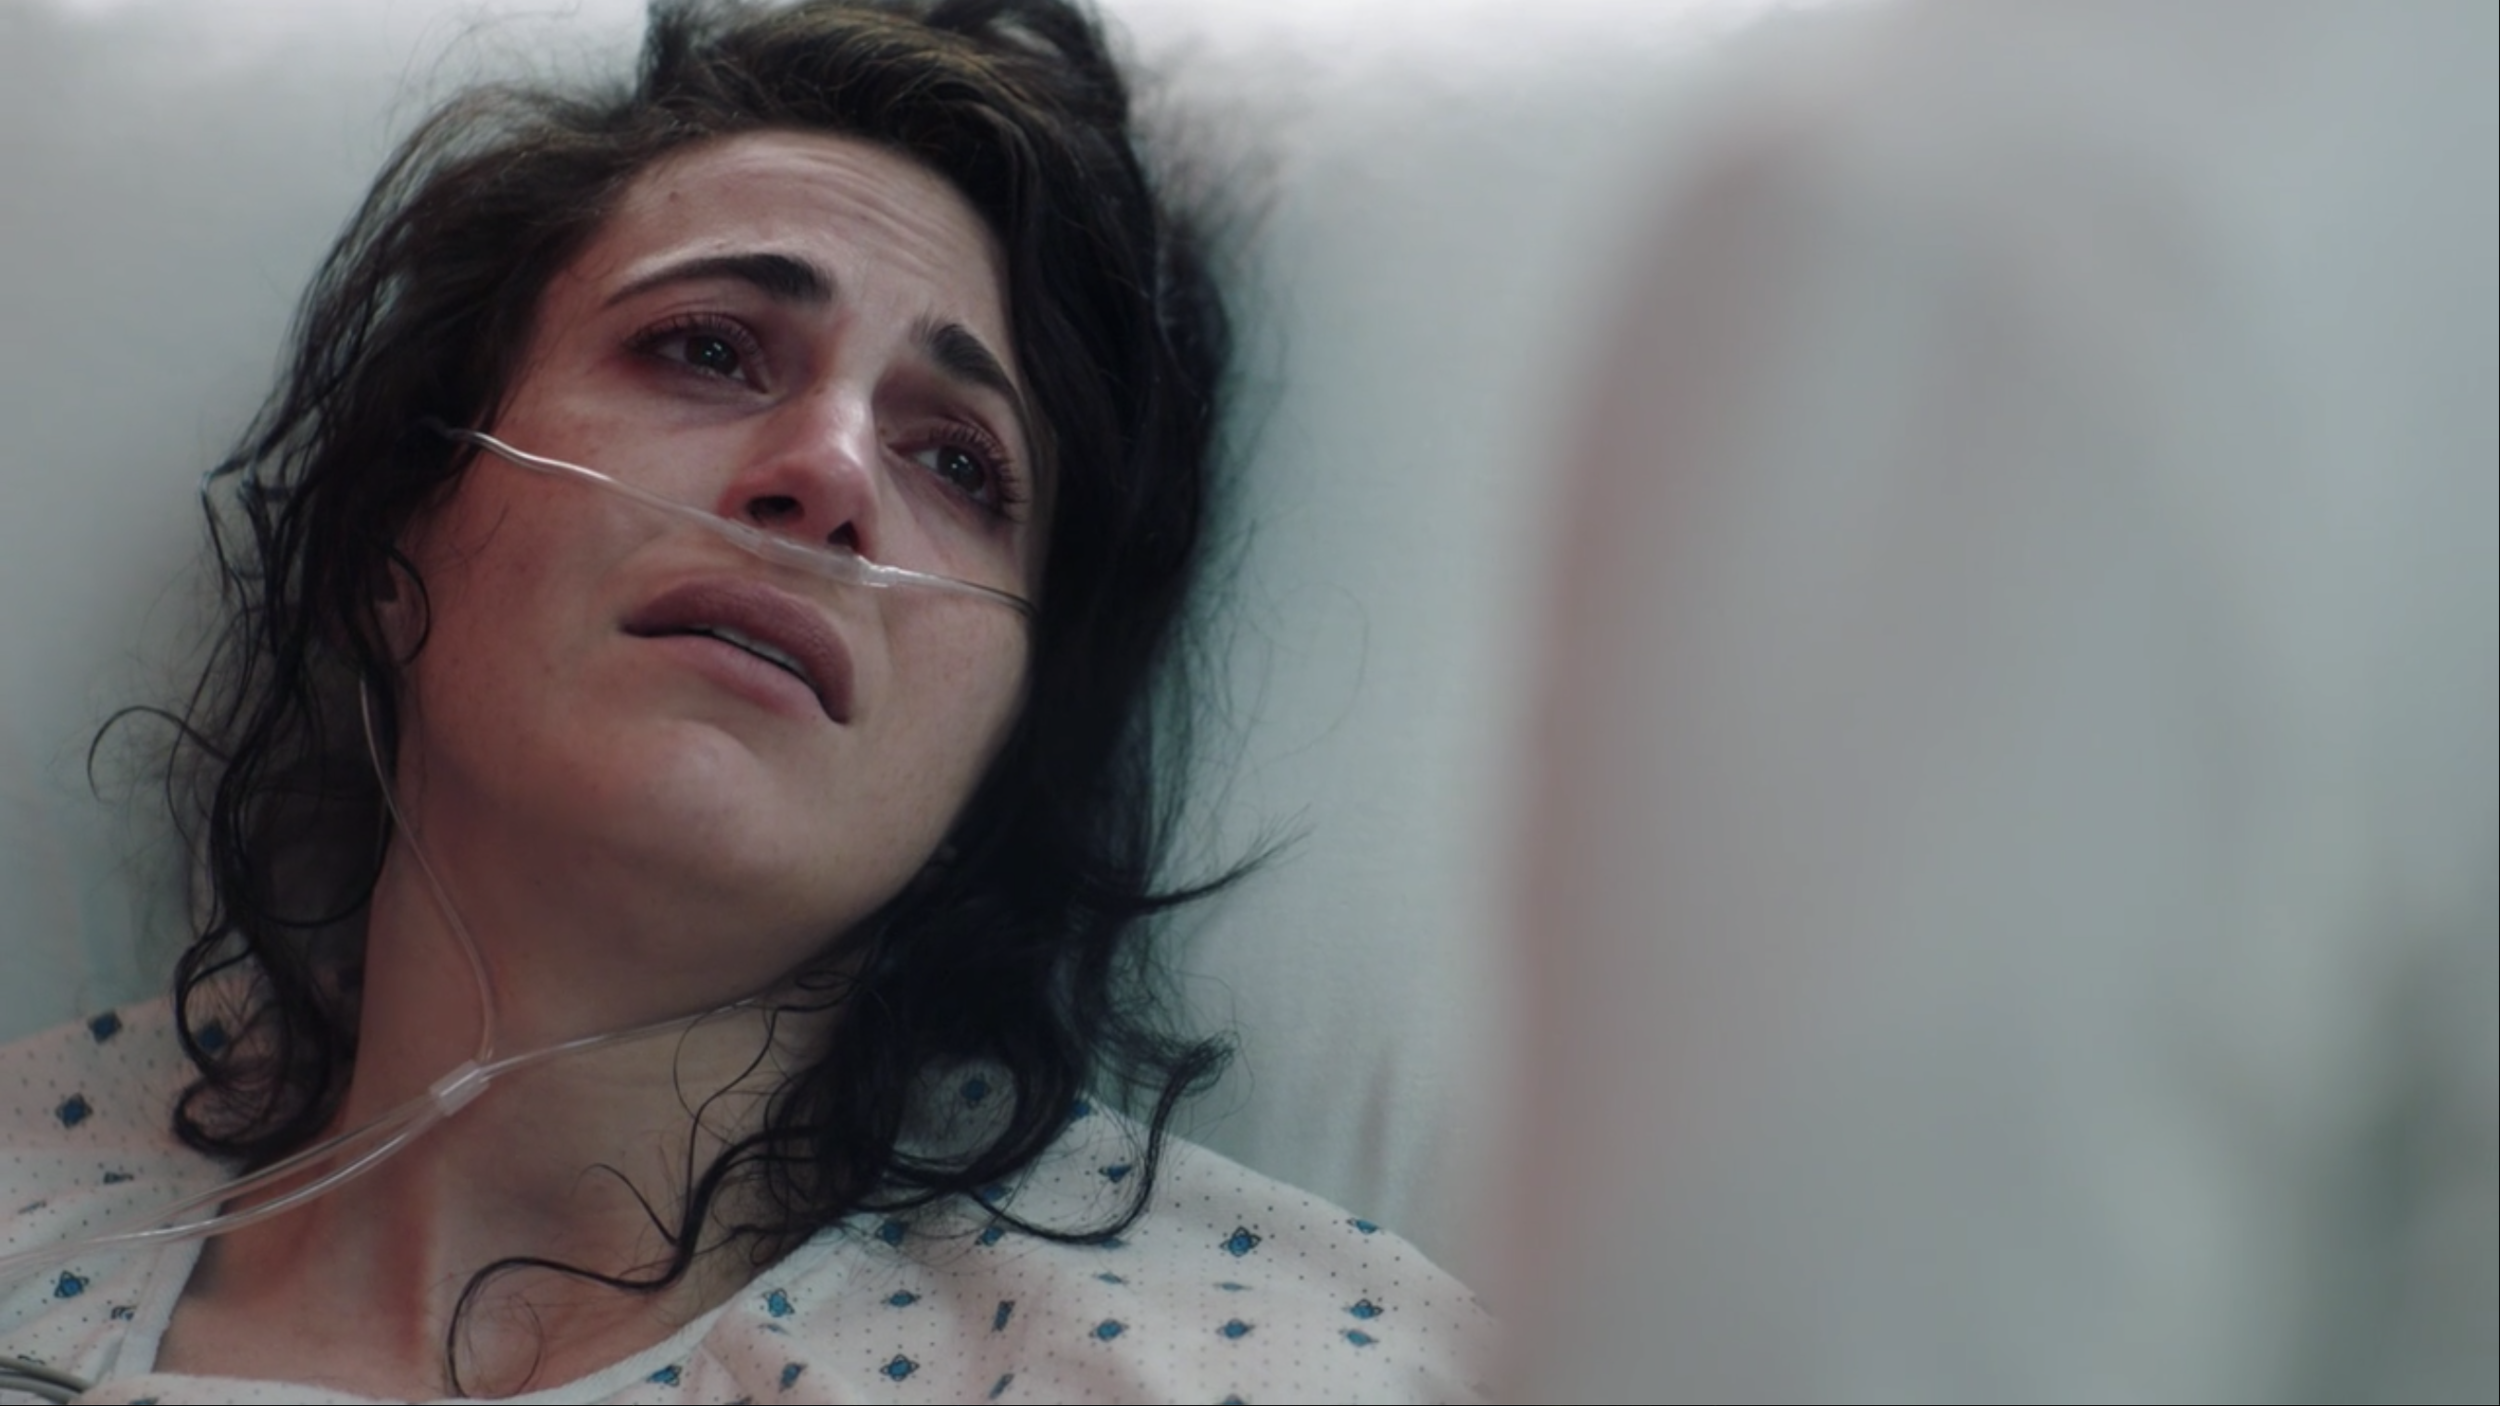 Adrienne_Whitney_Papp_The_ Resident_AdrienneWhitneyPapp_TheResident_S2E1_1.png